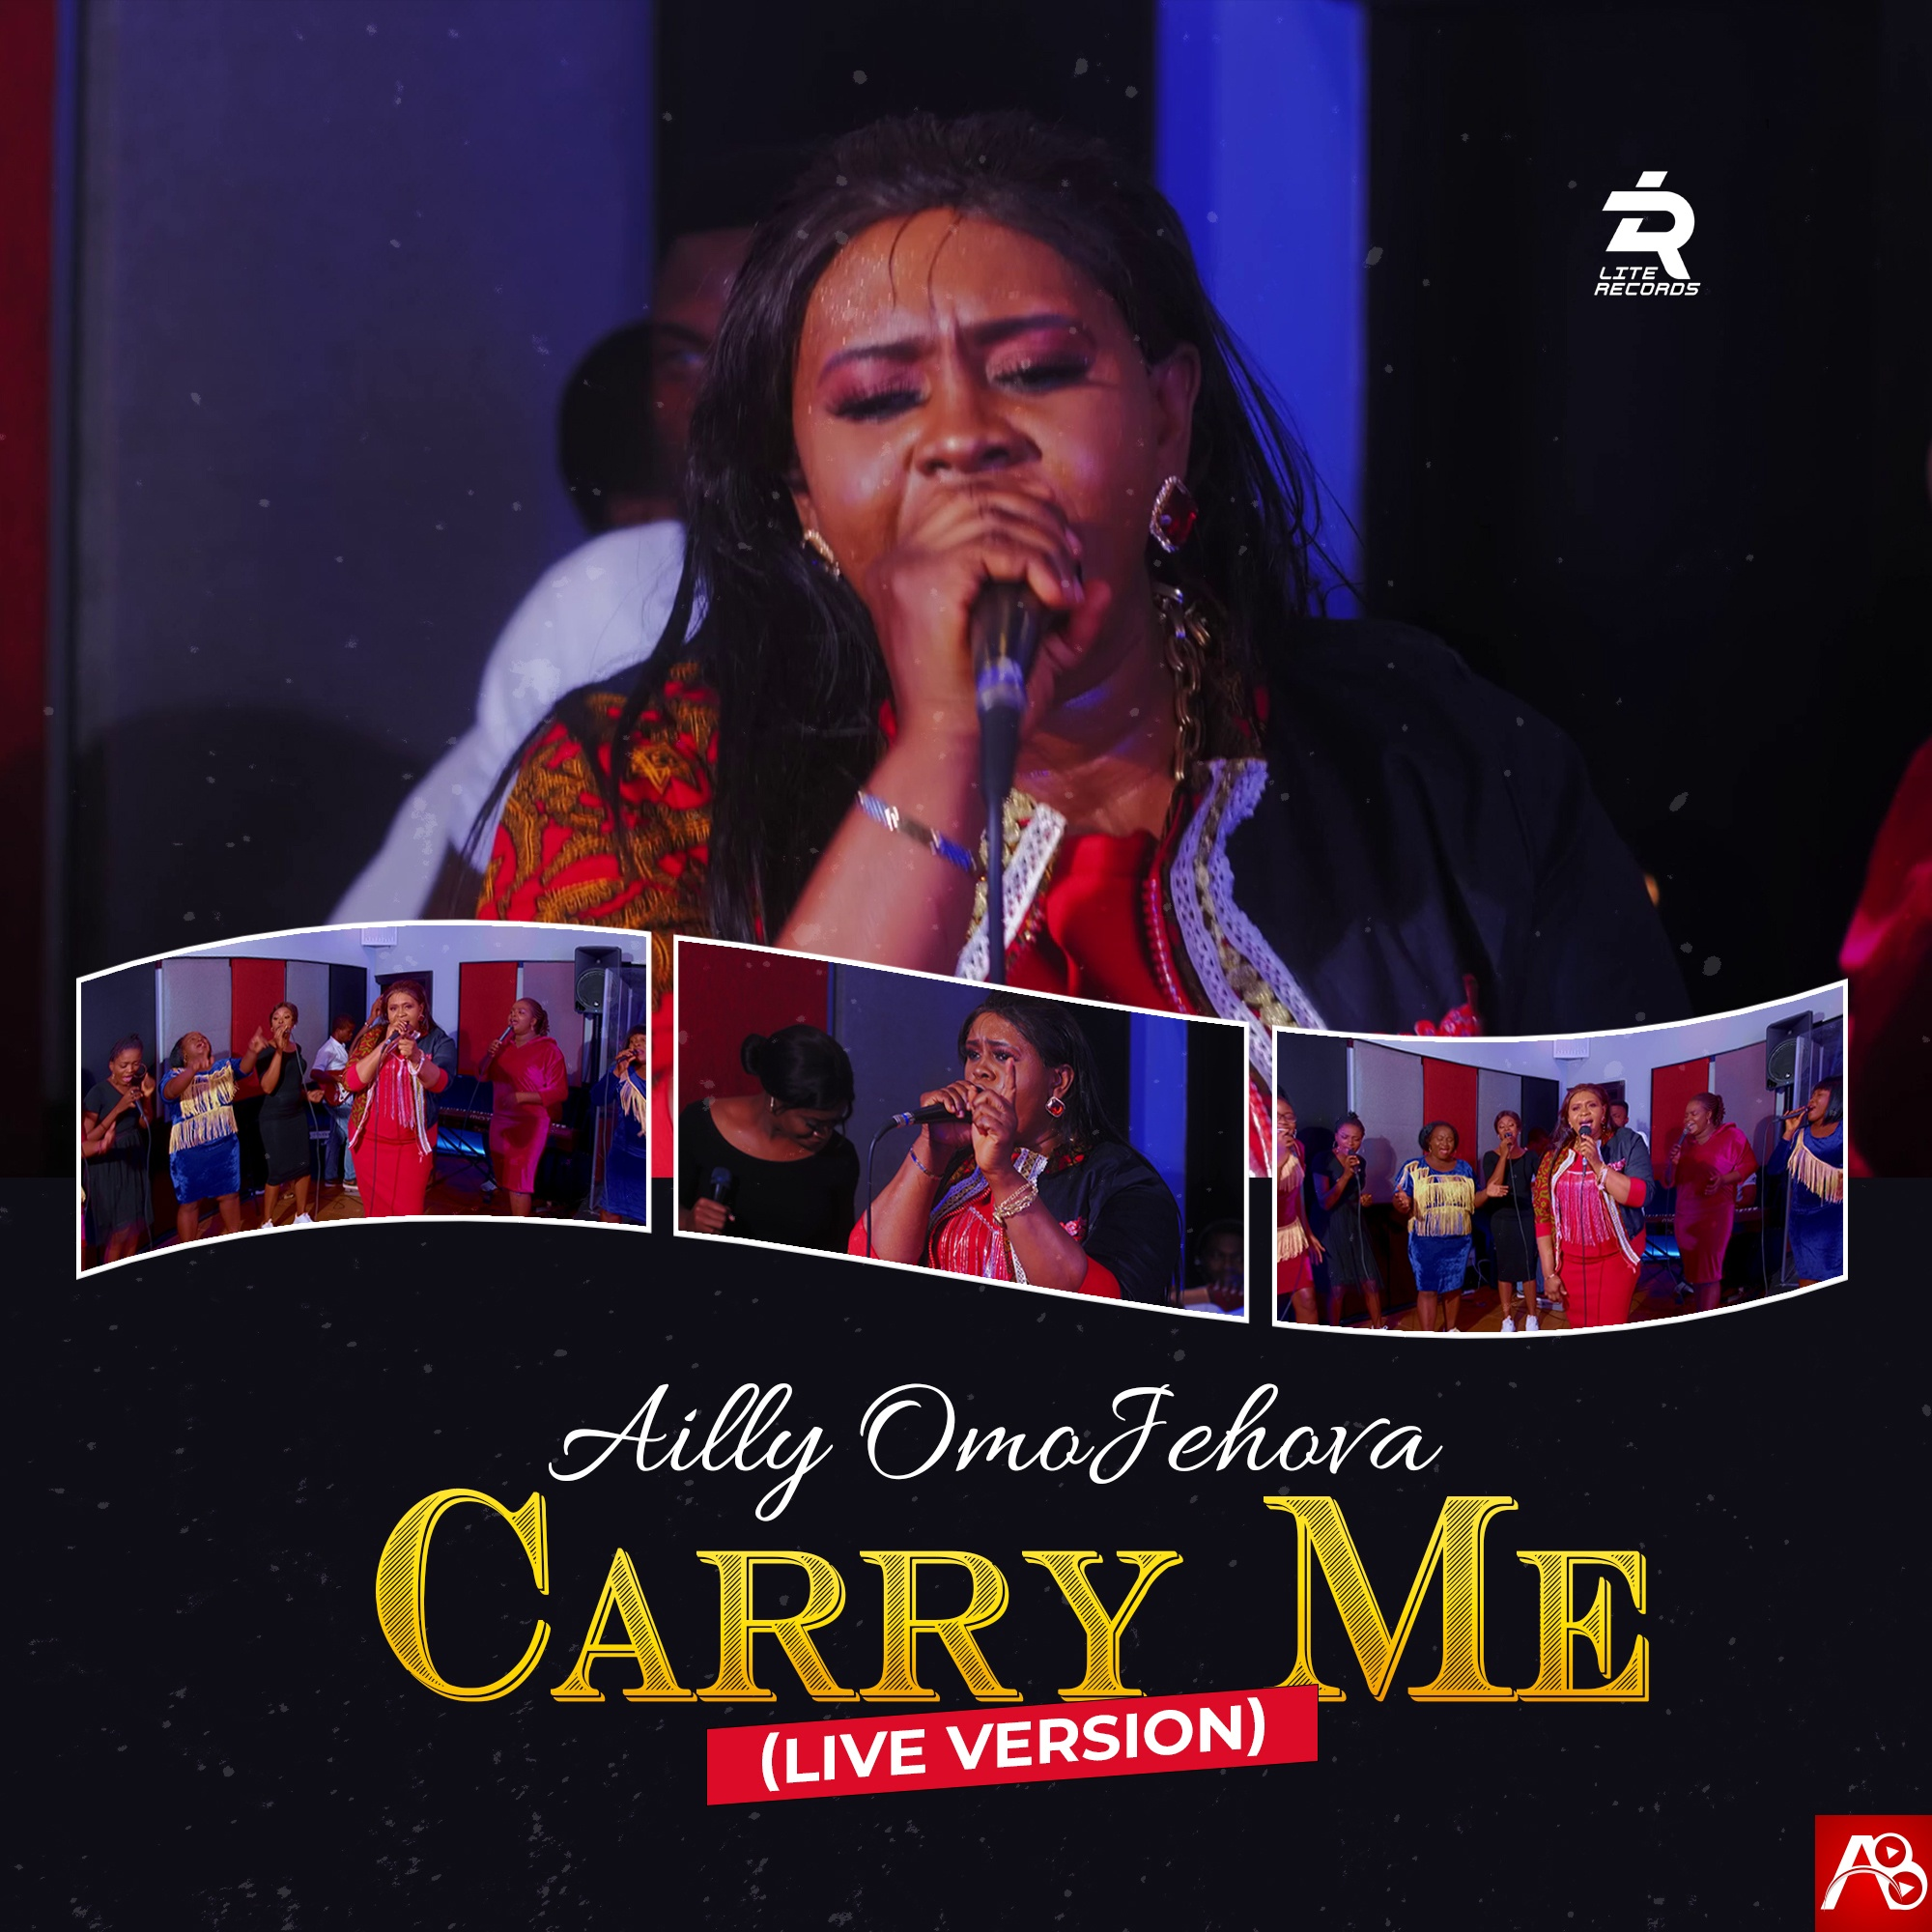 Live Video + MP3: Ailly Omojehova - Carry Me